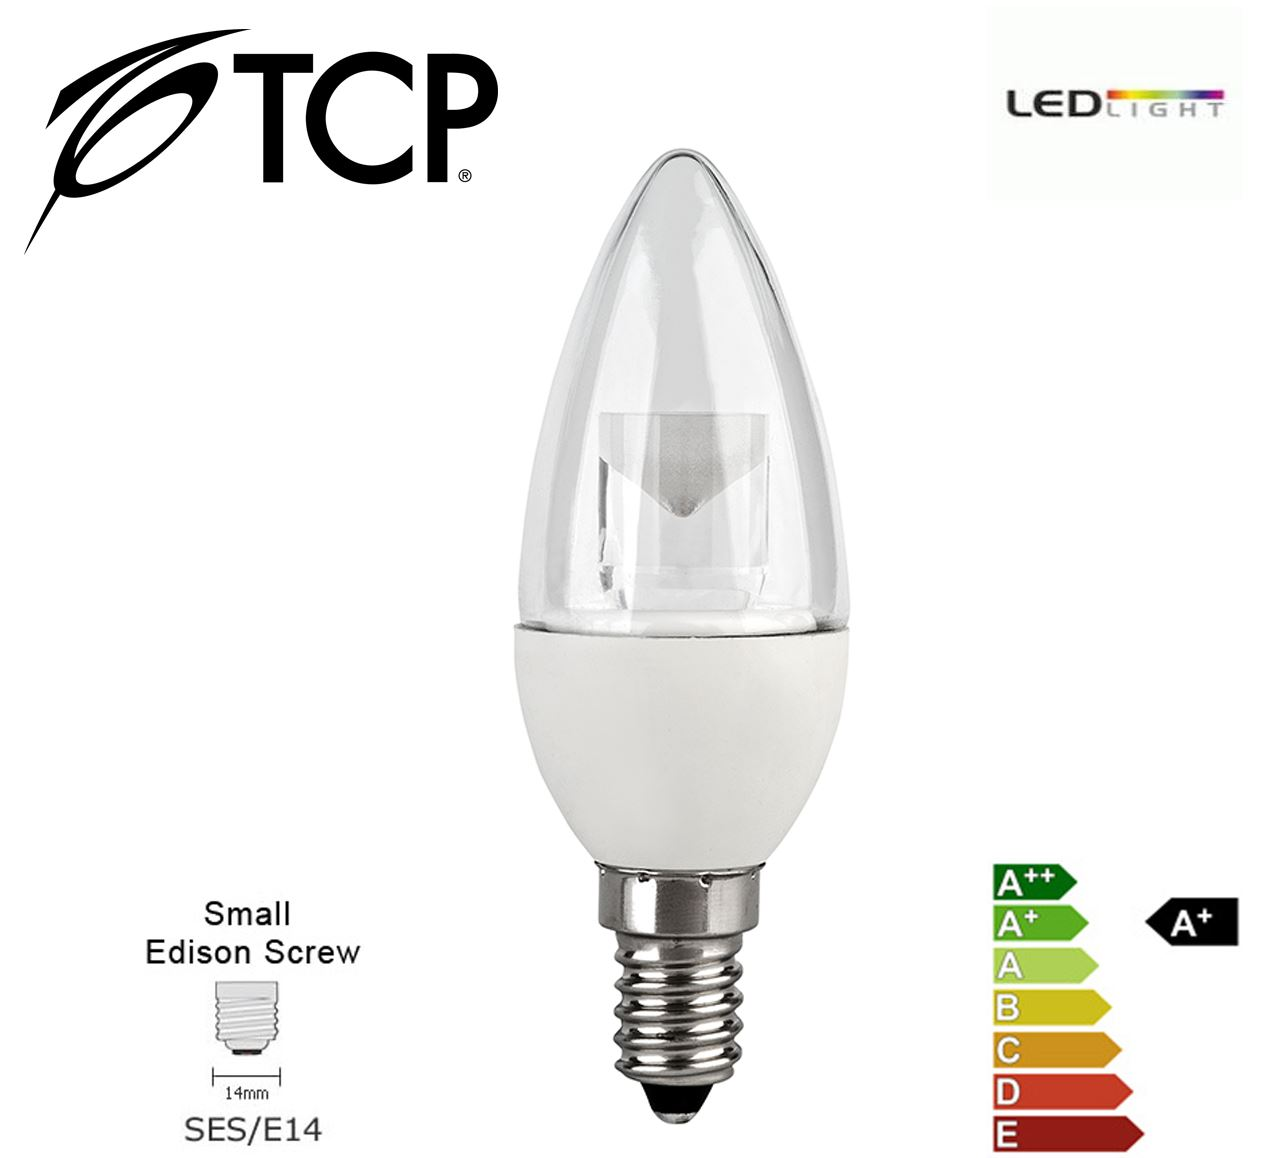 tcp 5w 10w gu10 b22 e27 e14 led light bulbs gls cool white warm white new ebay. Black Bedroom Furniture Sets. Home Design Ideas